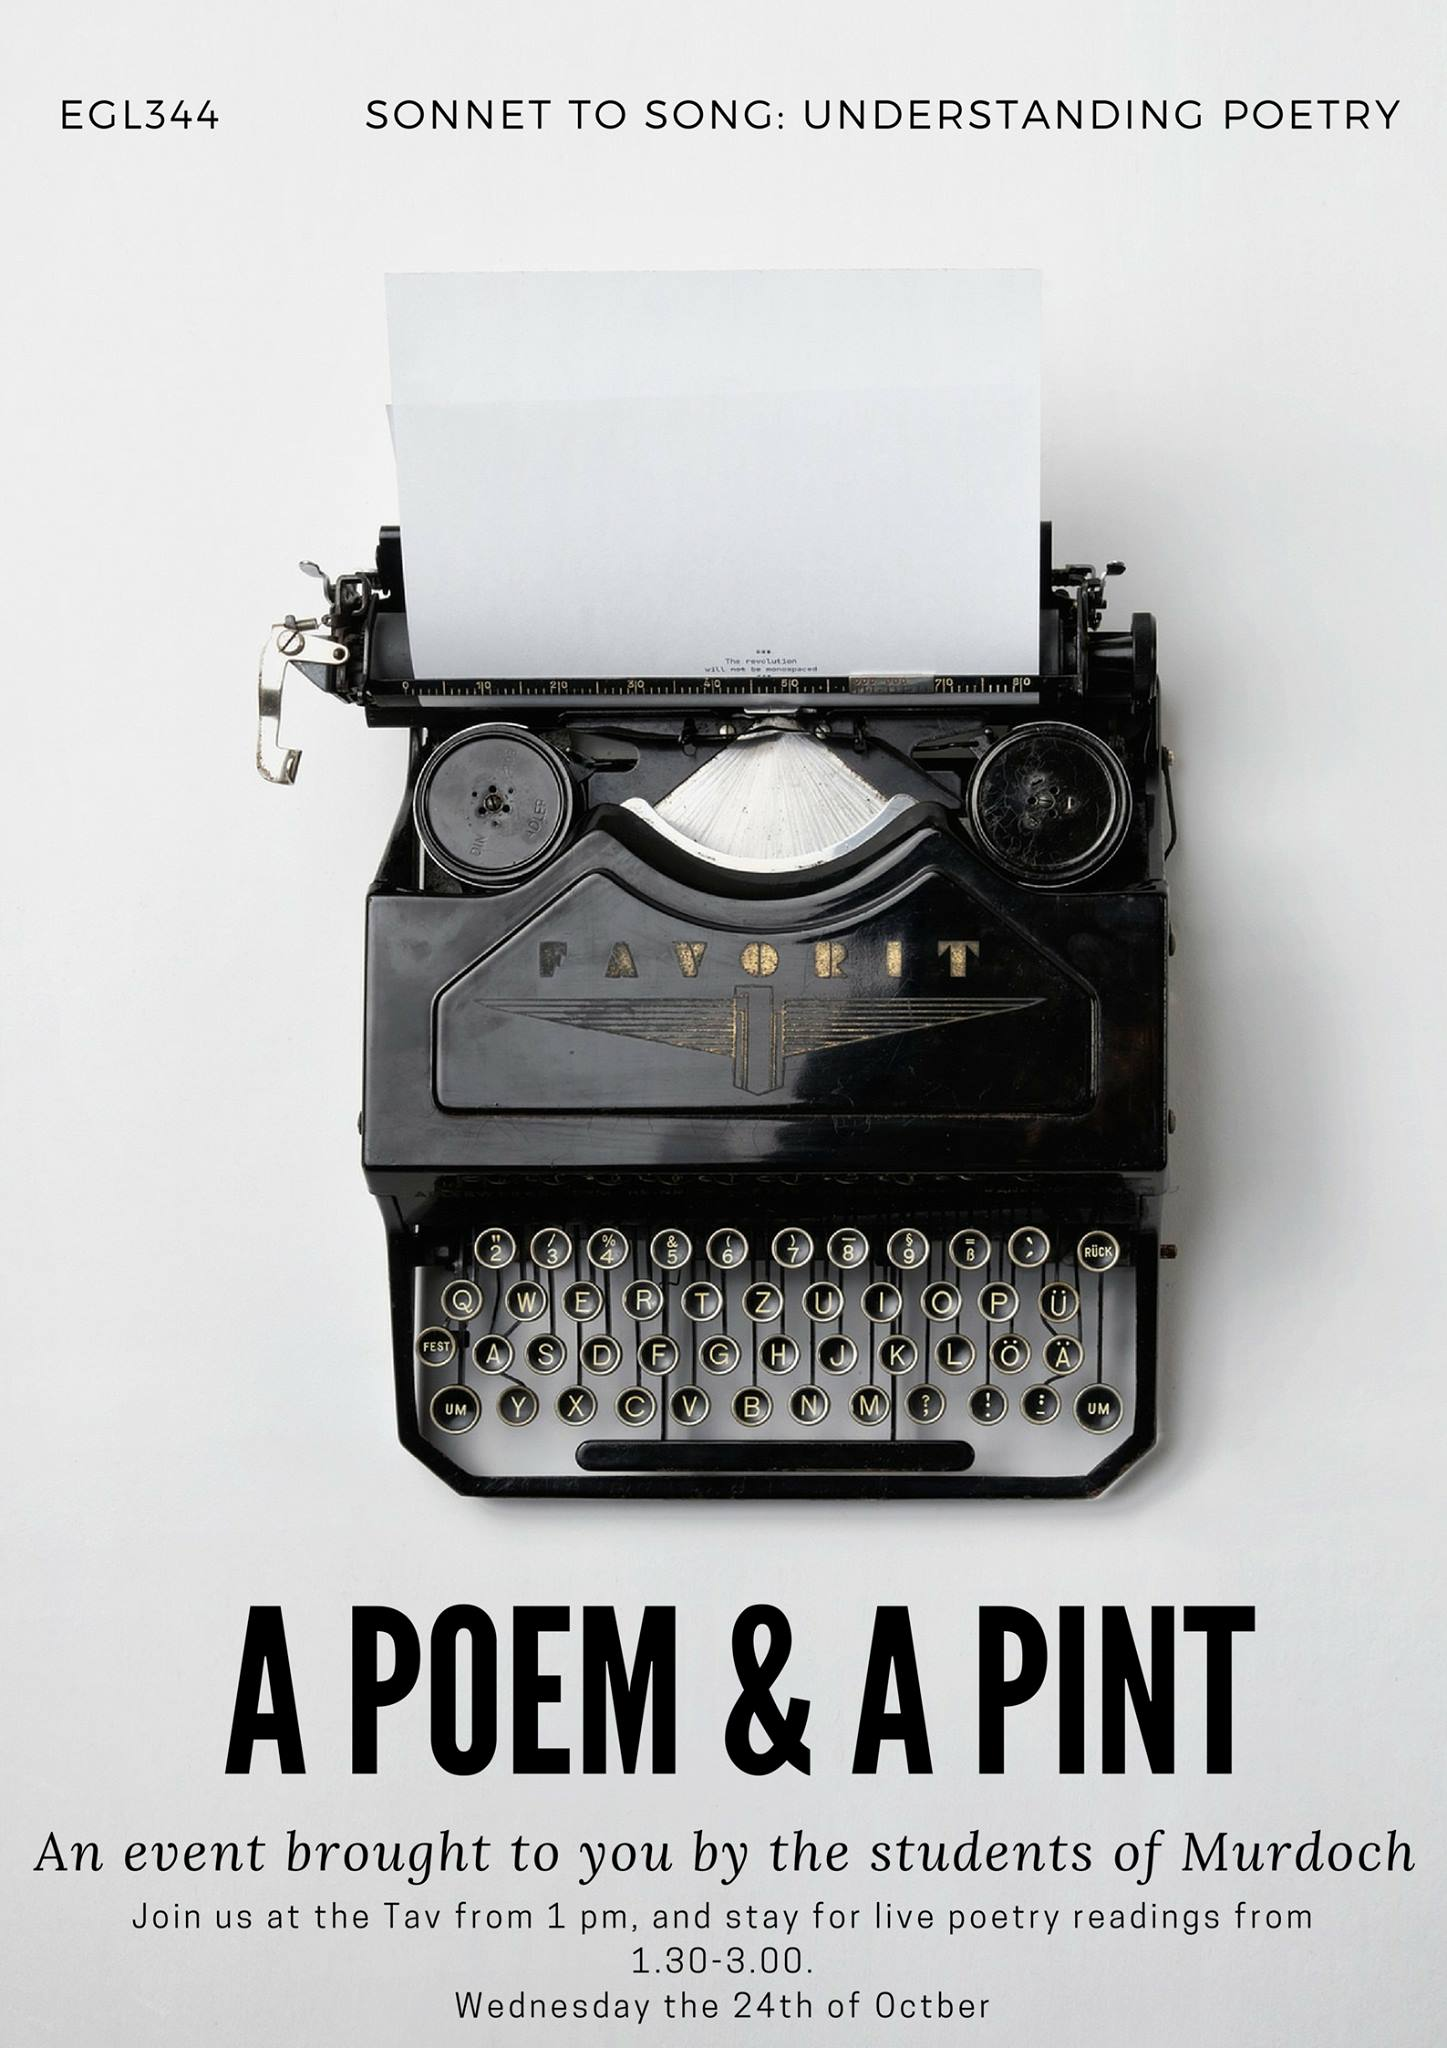 Poem and a Pint.jpg